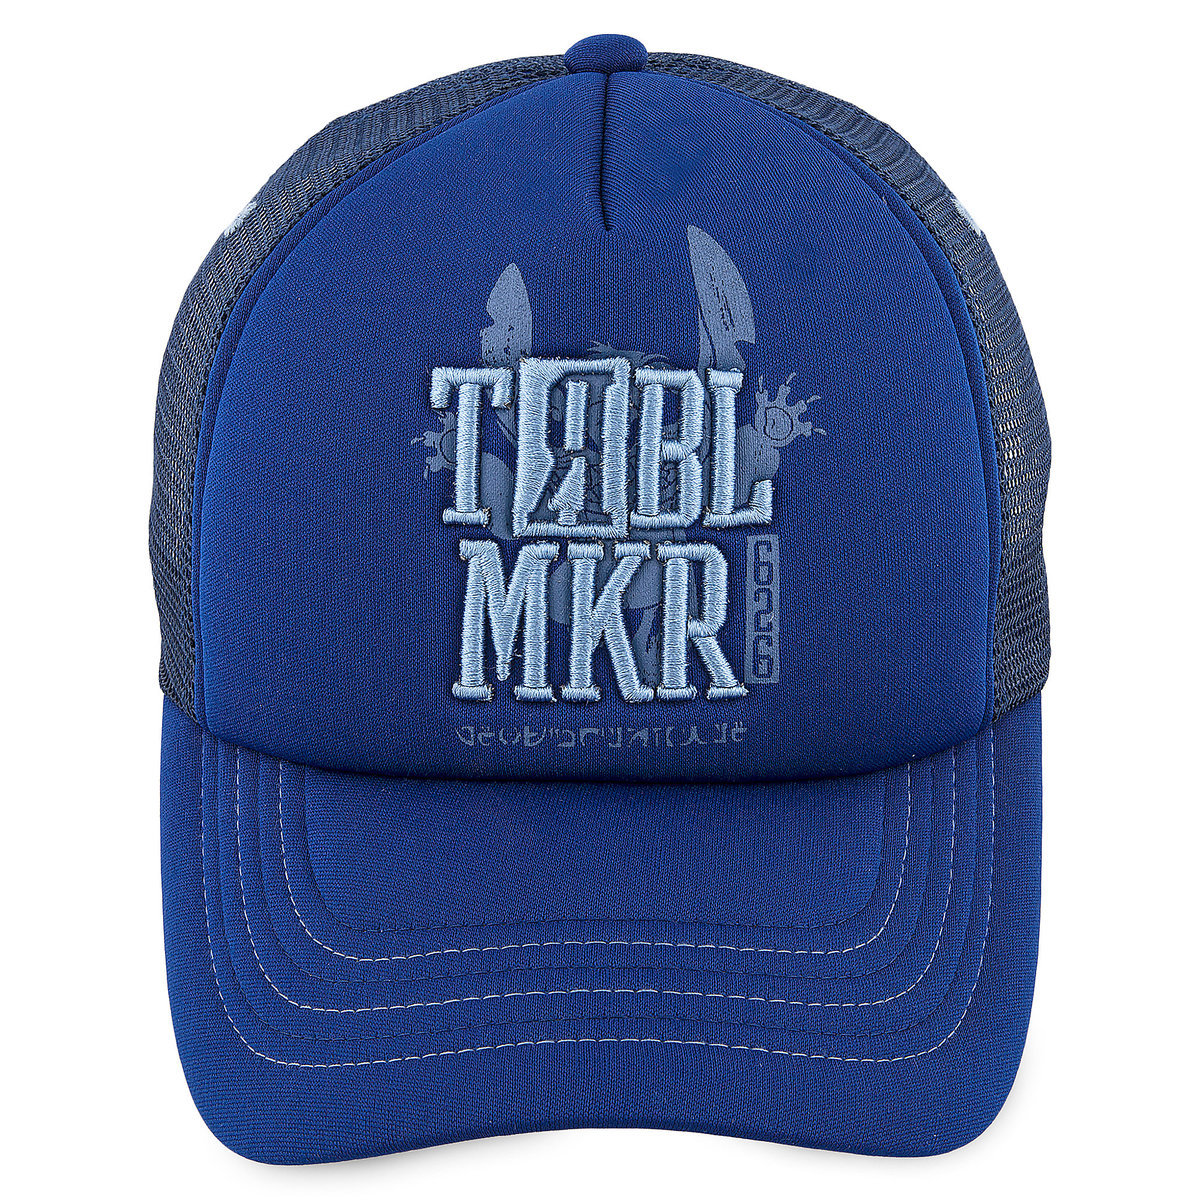 Disney Baseball Cap - Stitch ''TRBL MKR'' - Trucker Hat